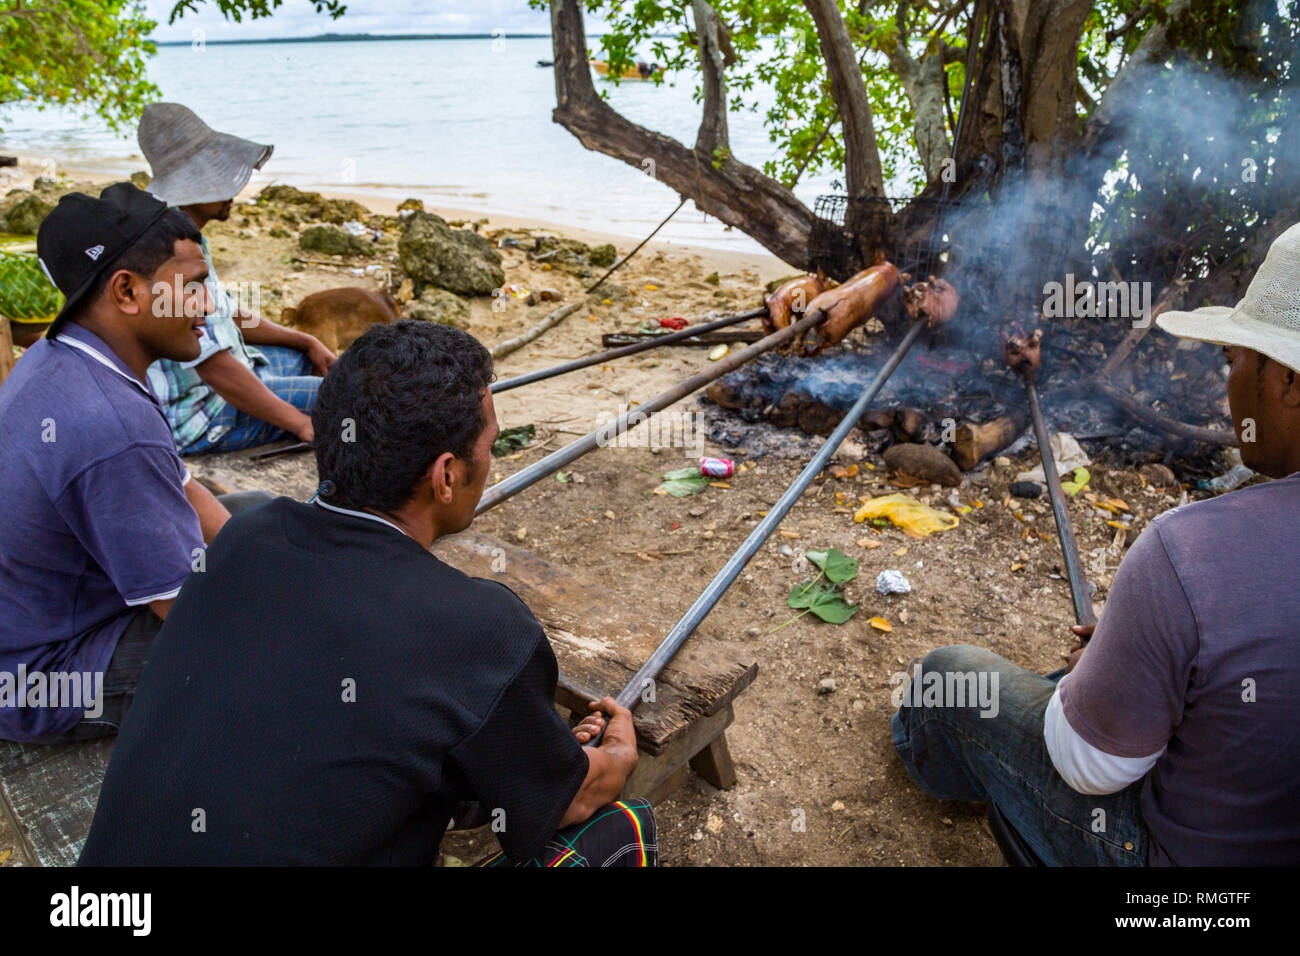 Tongatapu, Tonga - Jan 10 2014: group of local native indigenous Polynesian men does a pork barbecue of small piglets on an open fire on a Tongan beac - Stock Image